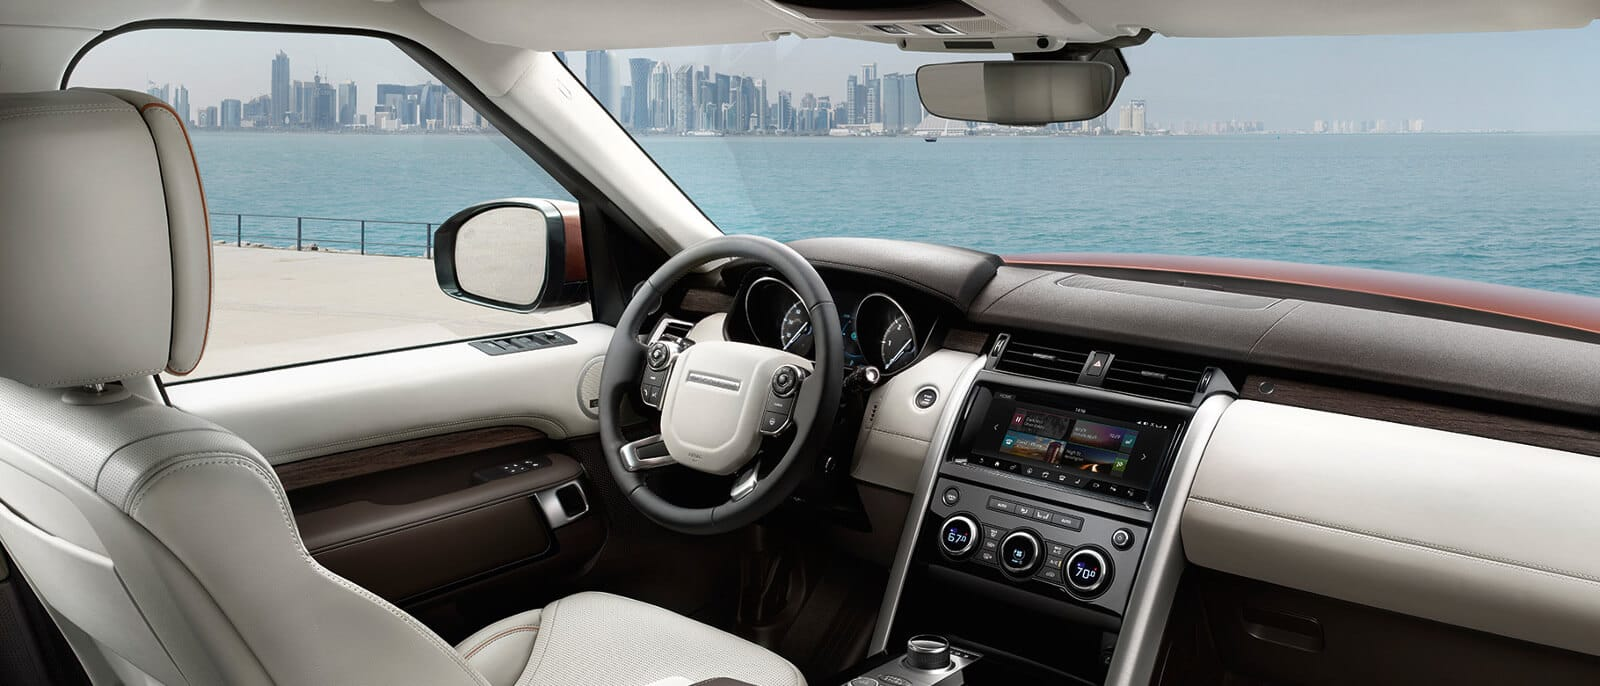 2017 Land Rover Discovery Interior 3